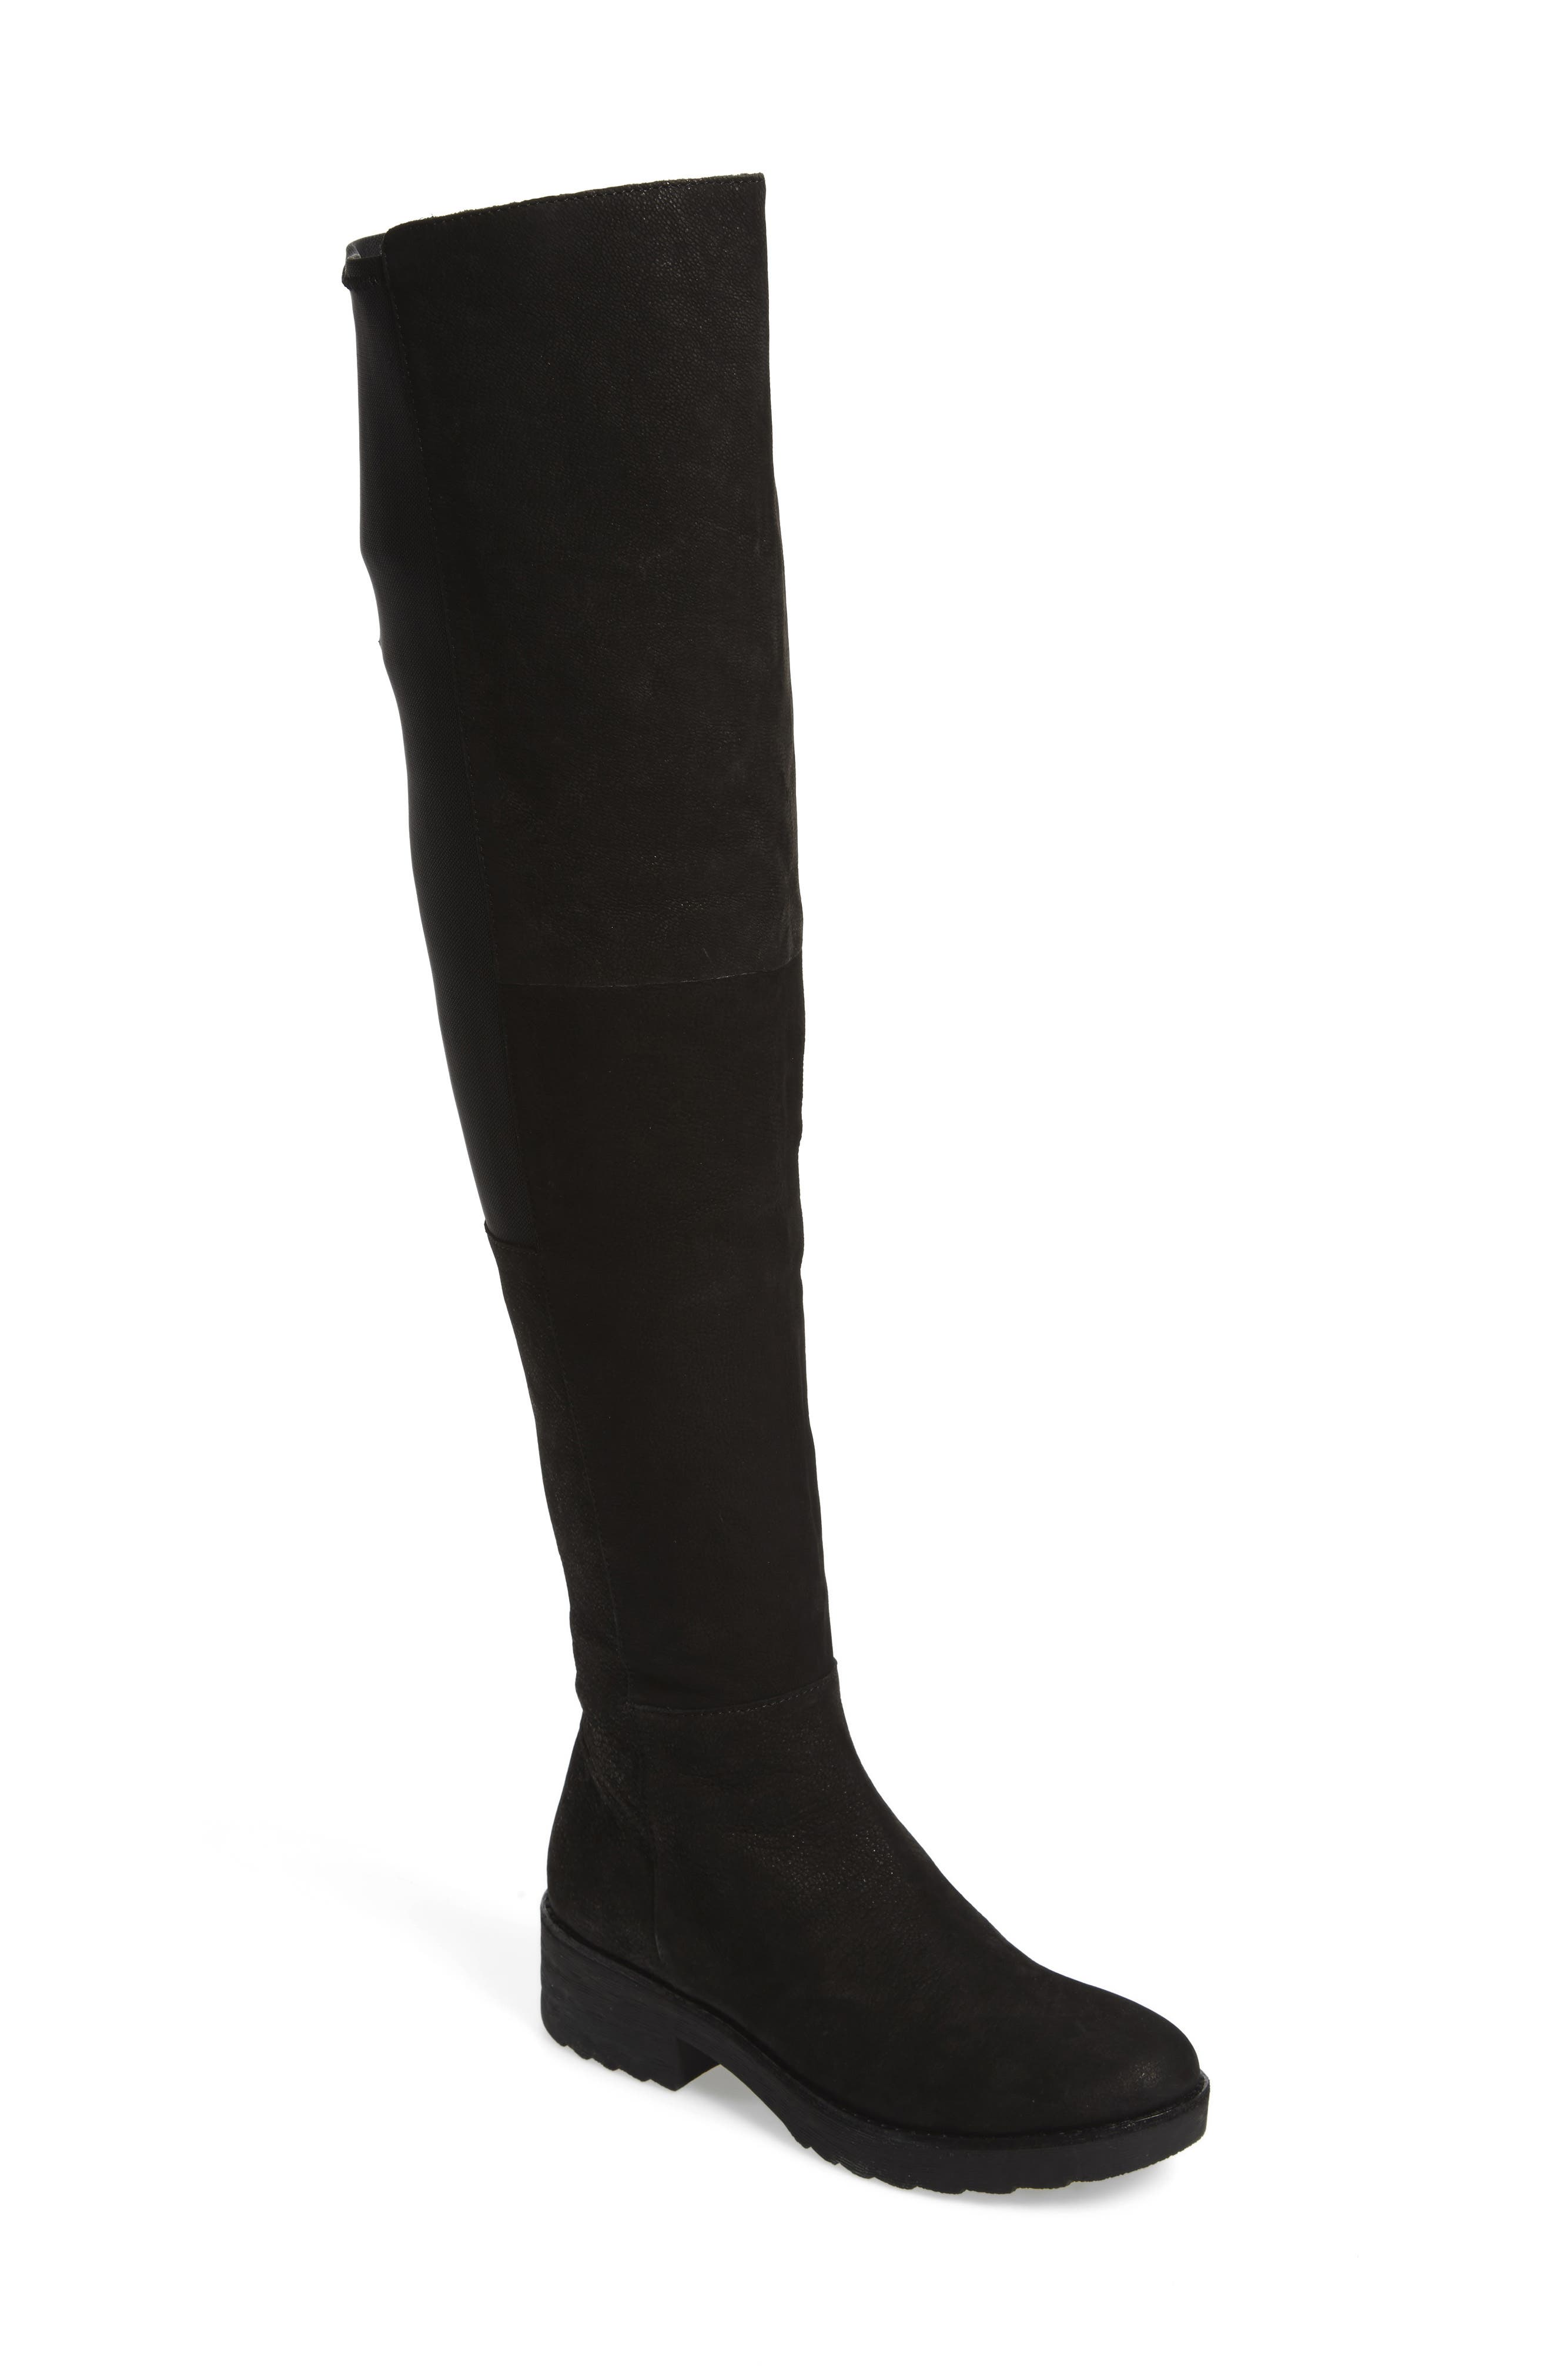 Loft Over the Knee Boot,                             Main thumbnail 1, color,                             001